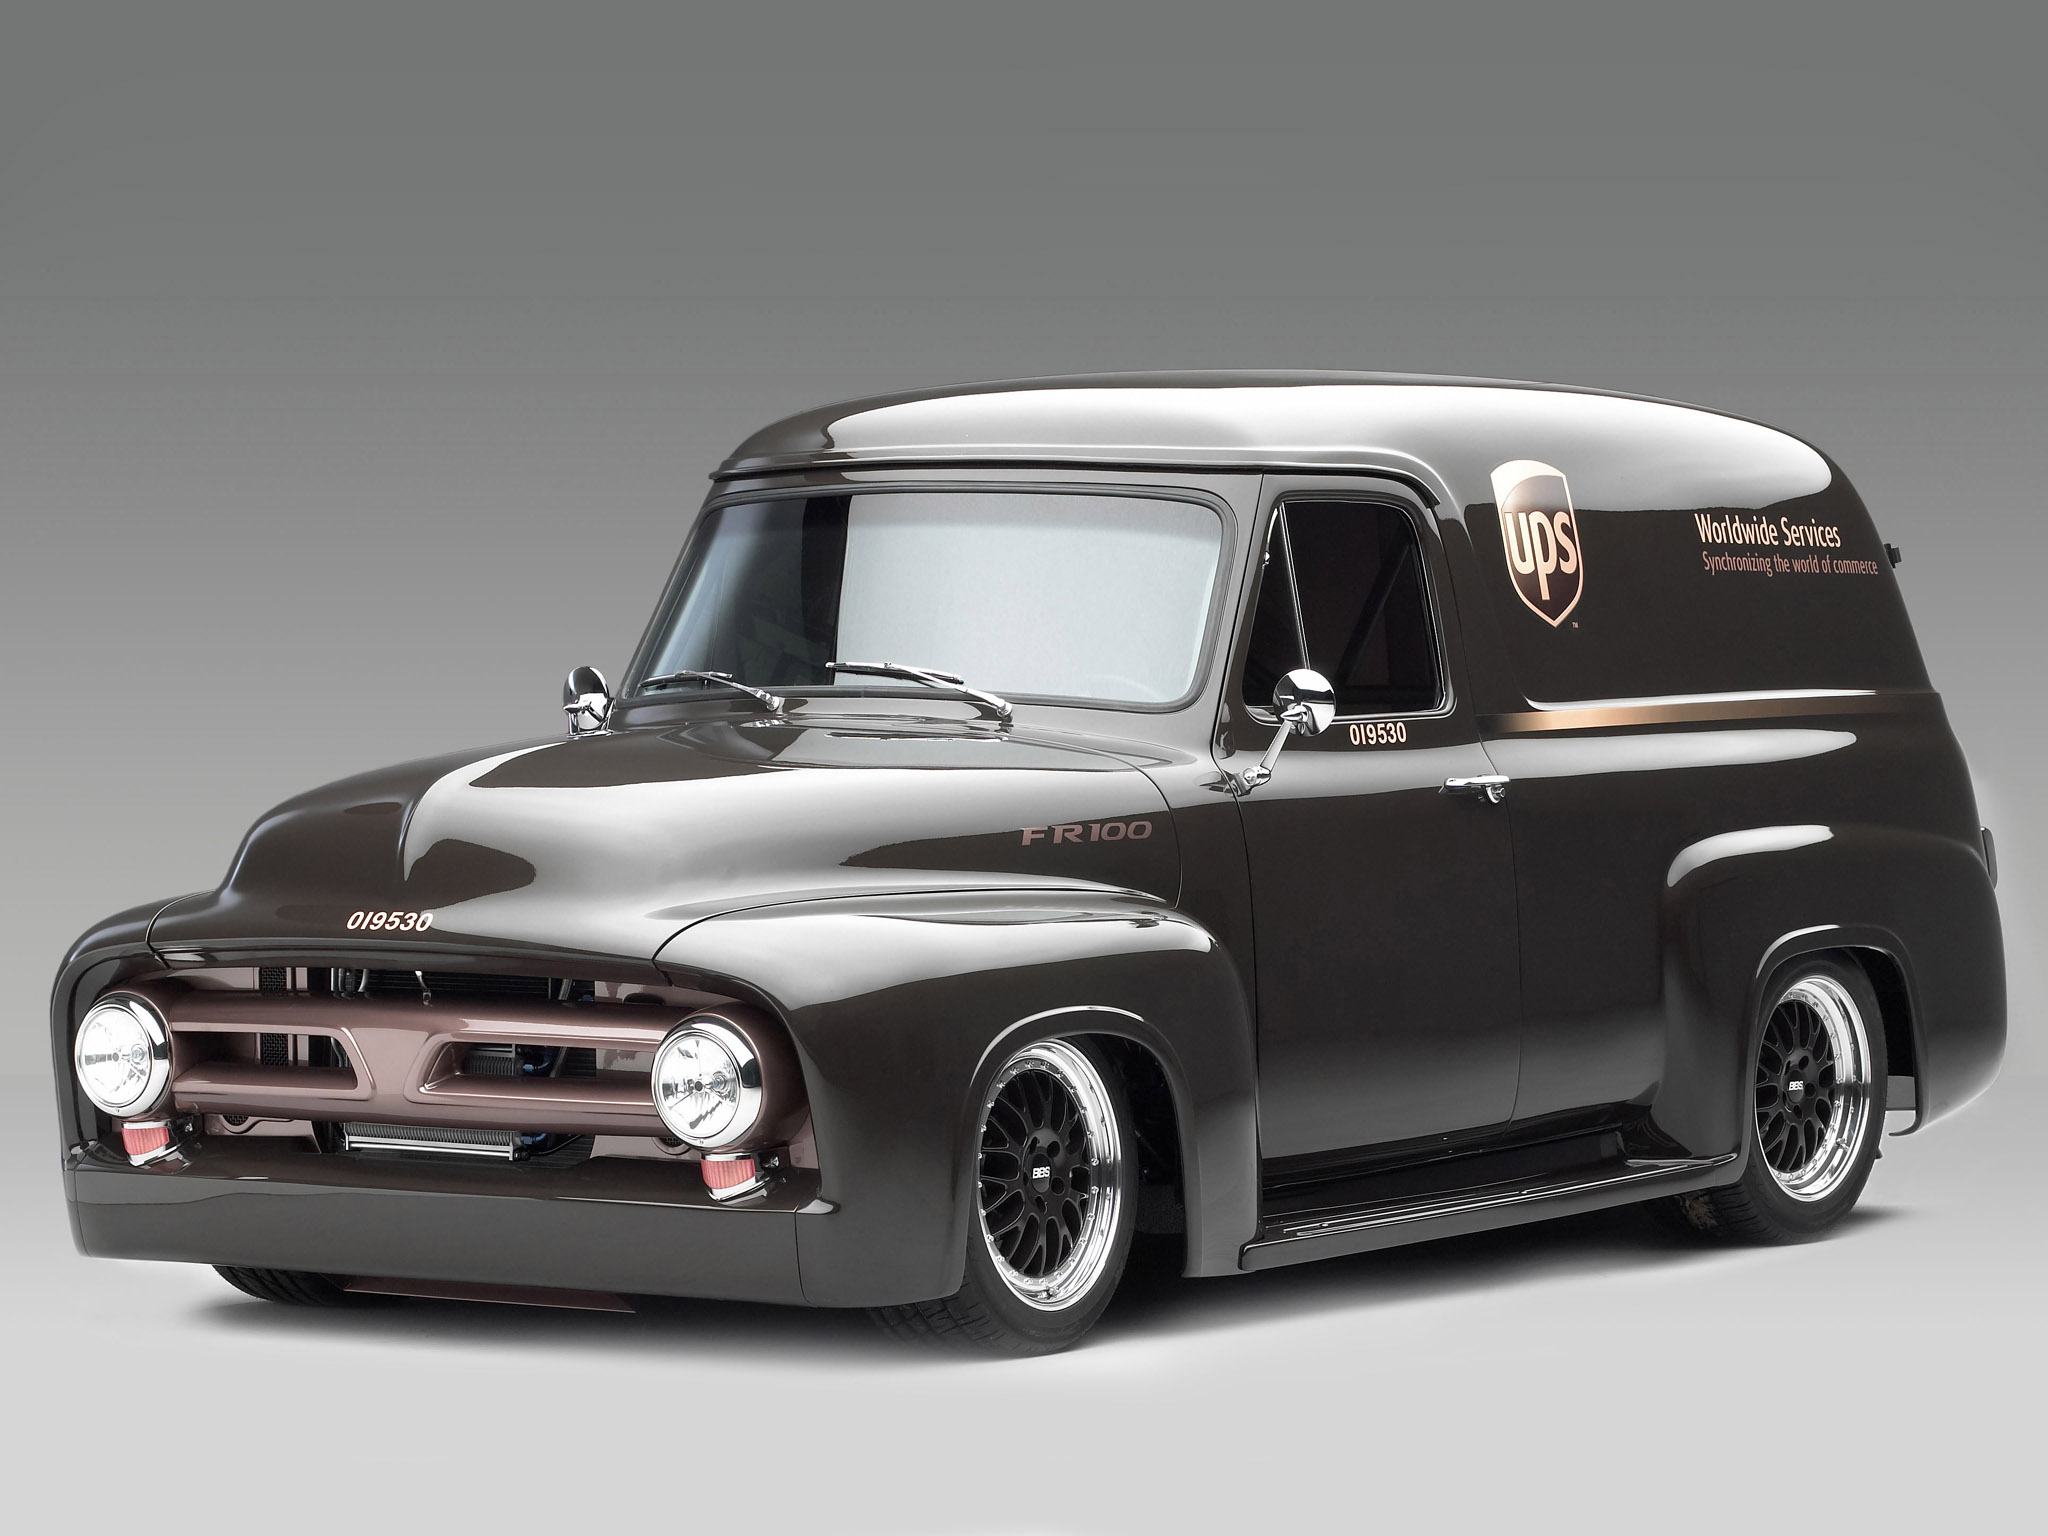 1953 Ford Fr100 Panel Truck Concept Hot Rod Rods Retro Wallpaper